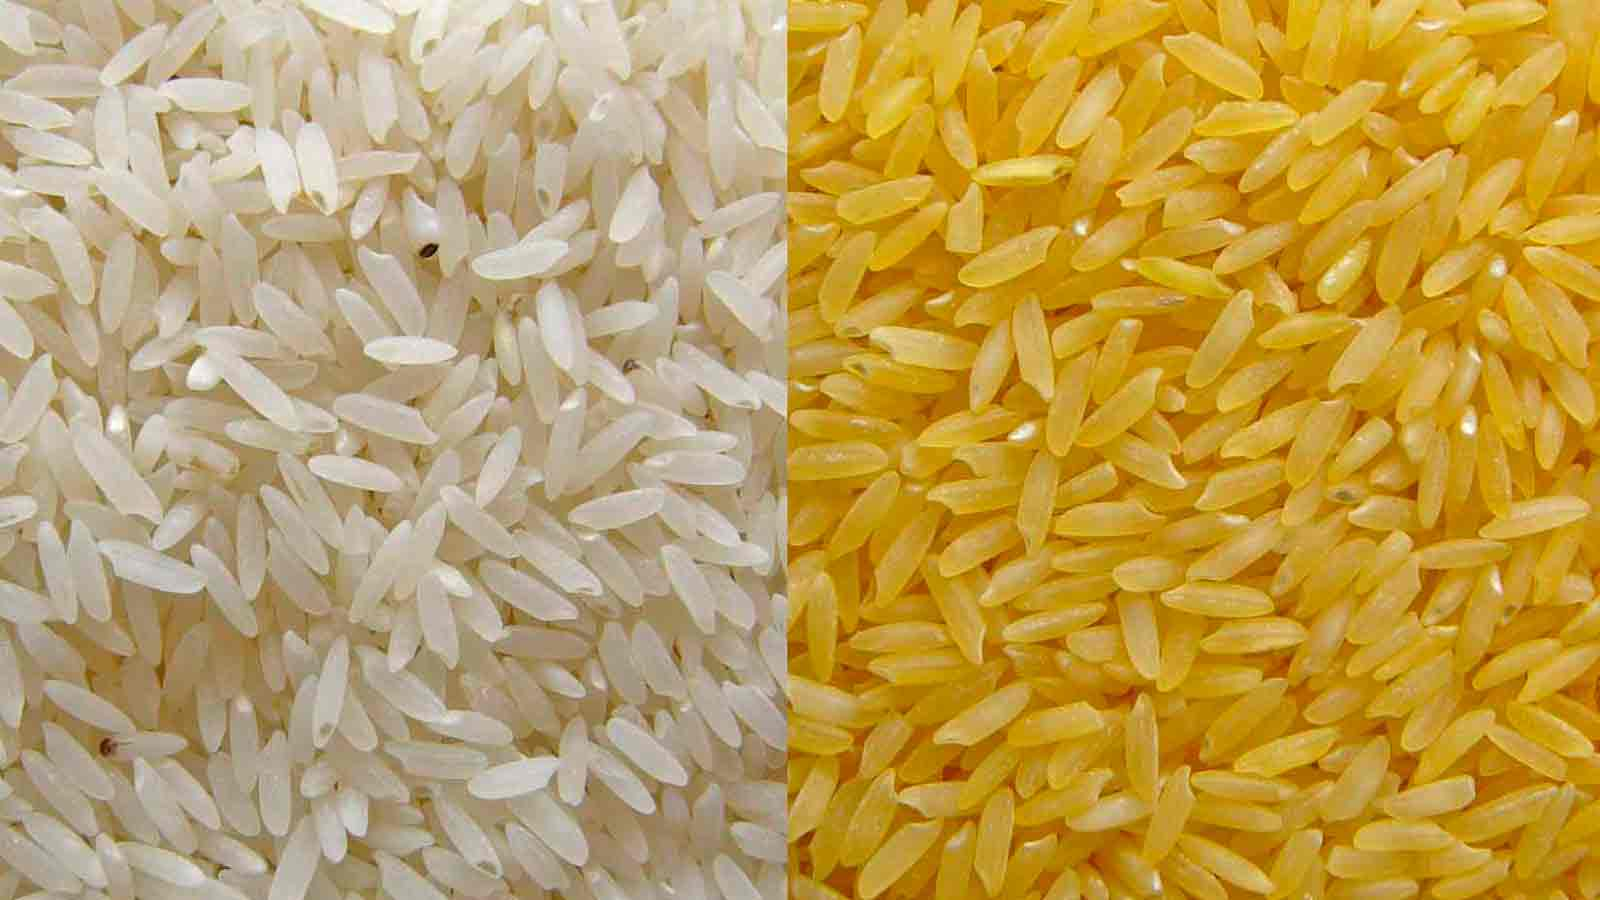 Global Organic Rice Protein Market Size - Axiom Foods, Shafi Gluco Chem, AIDP